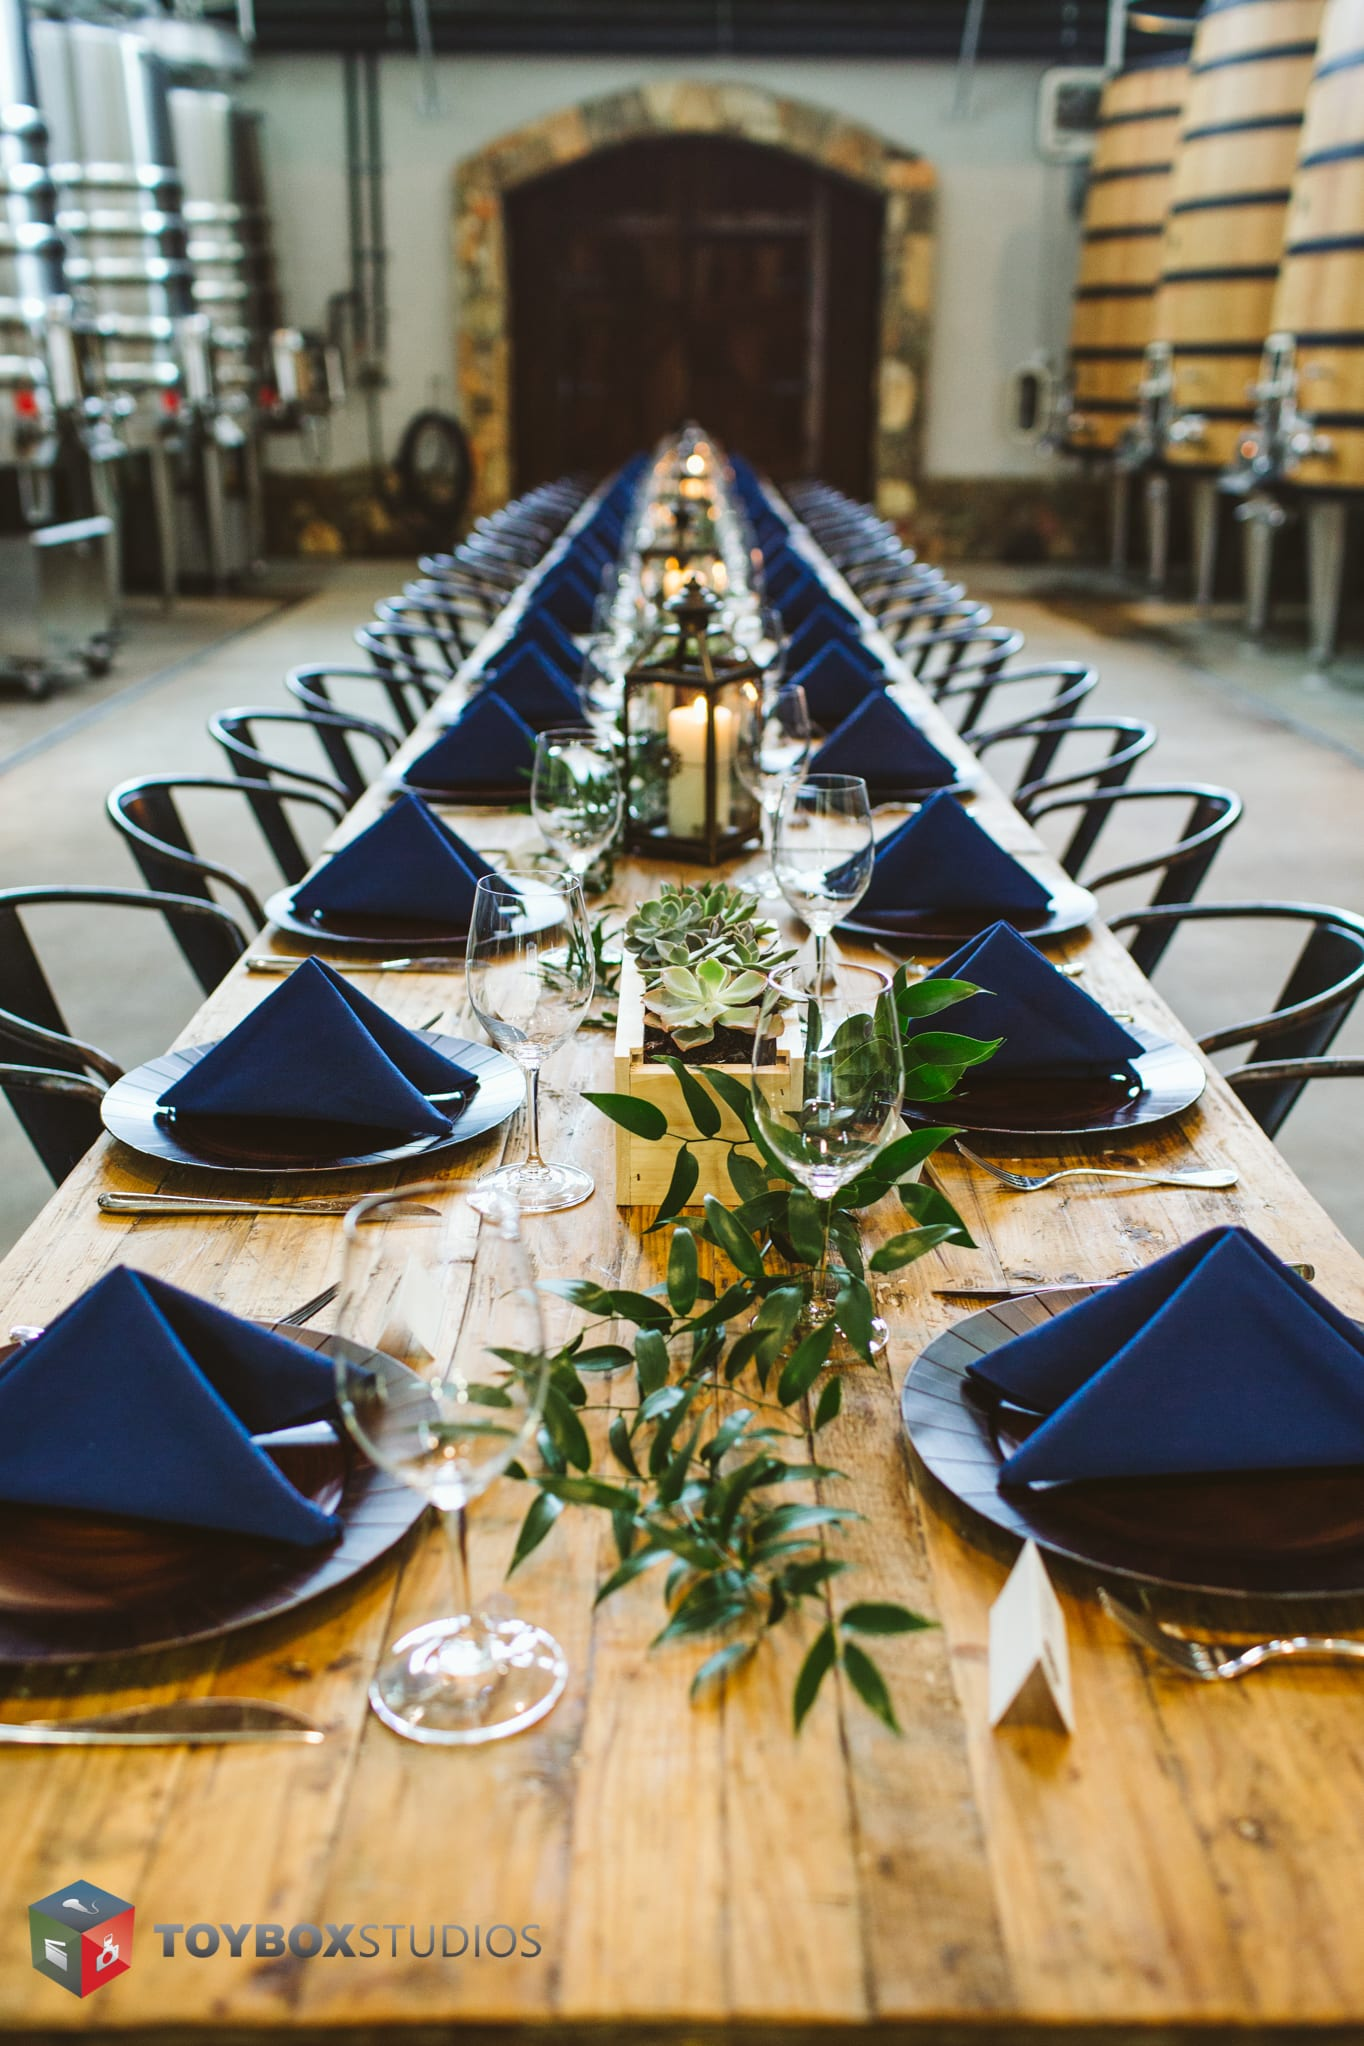 Stone Tower Winery Barrel Room Long Wooden Table Wedding Dinner Blue Napkins